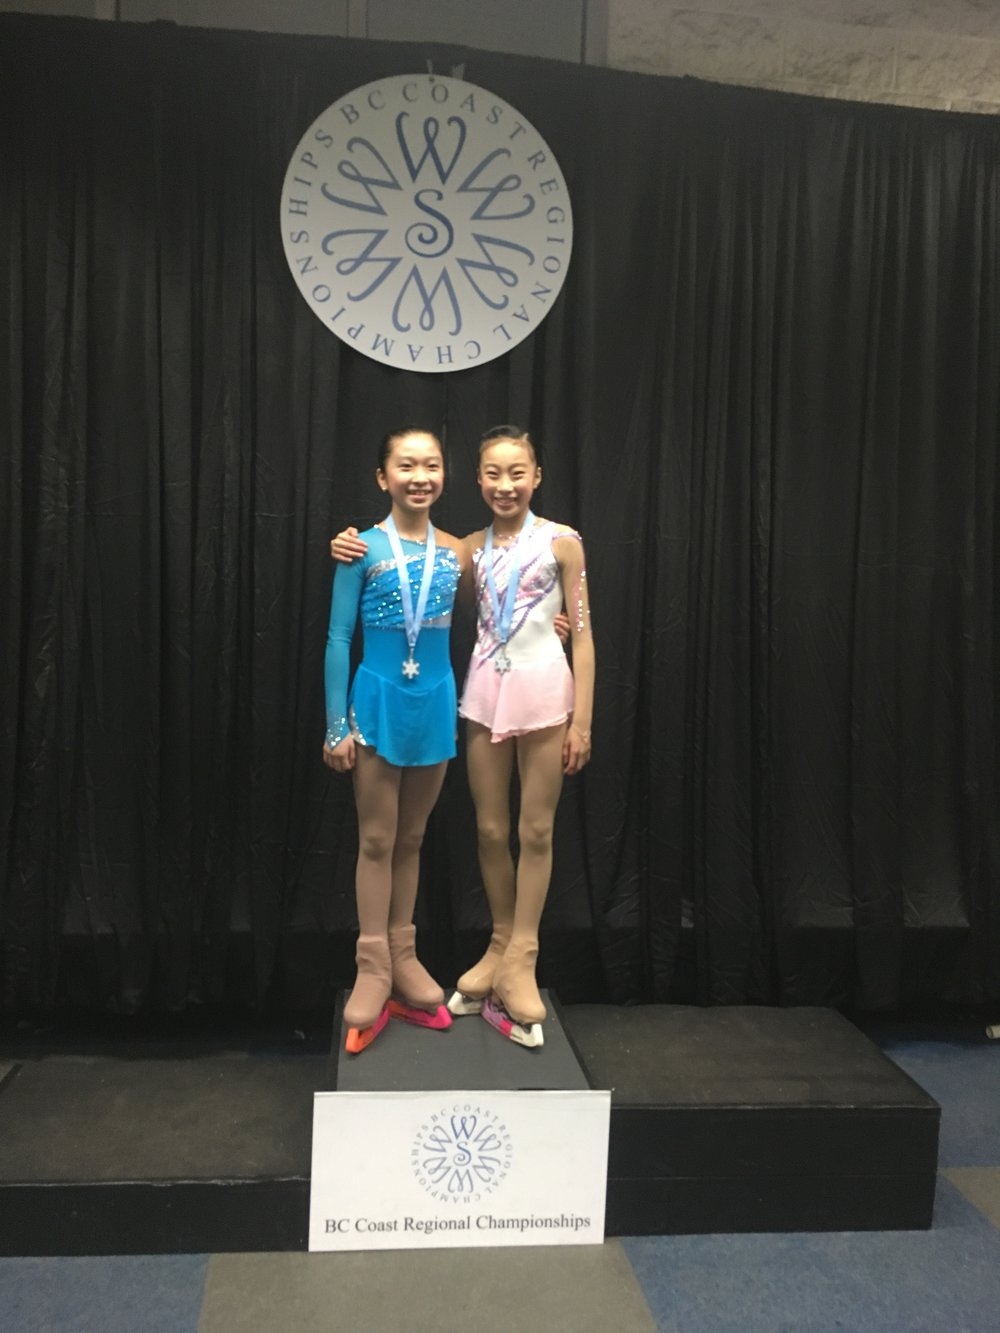 Yena & Luka after their Gold and Silver free program performances